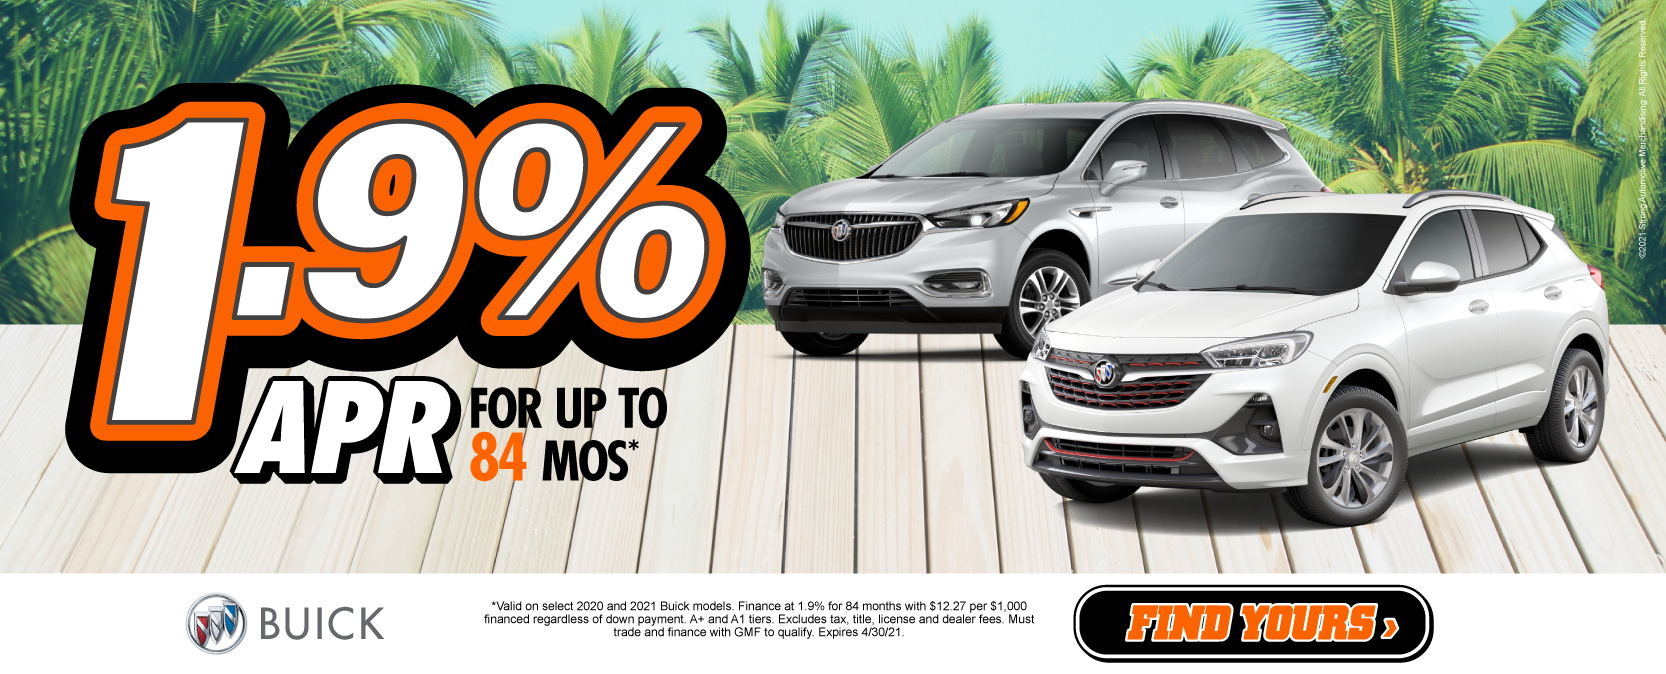 Buick 1.9% APR for up to 84 months